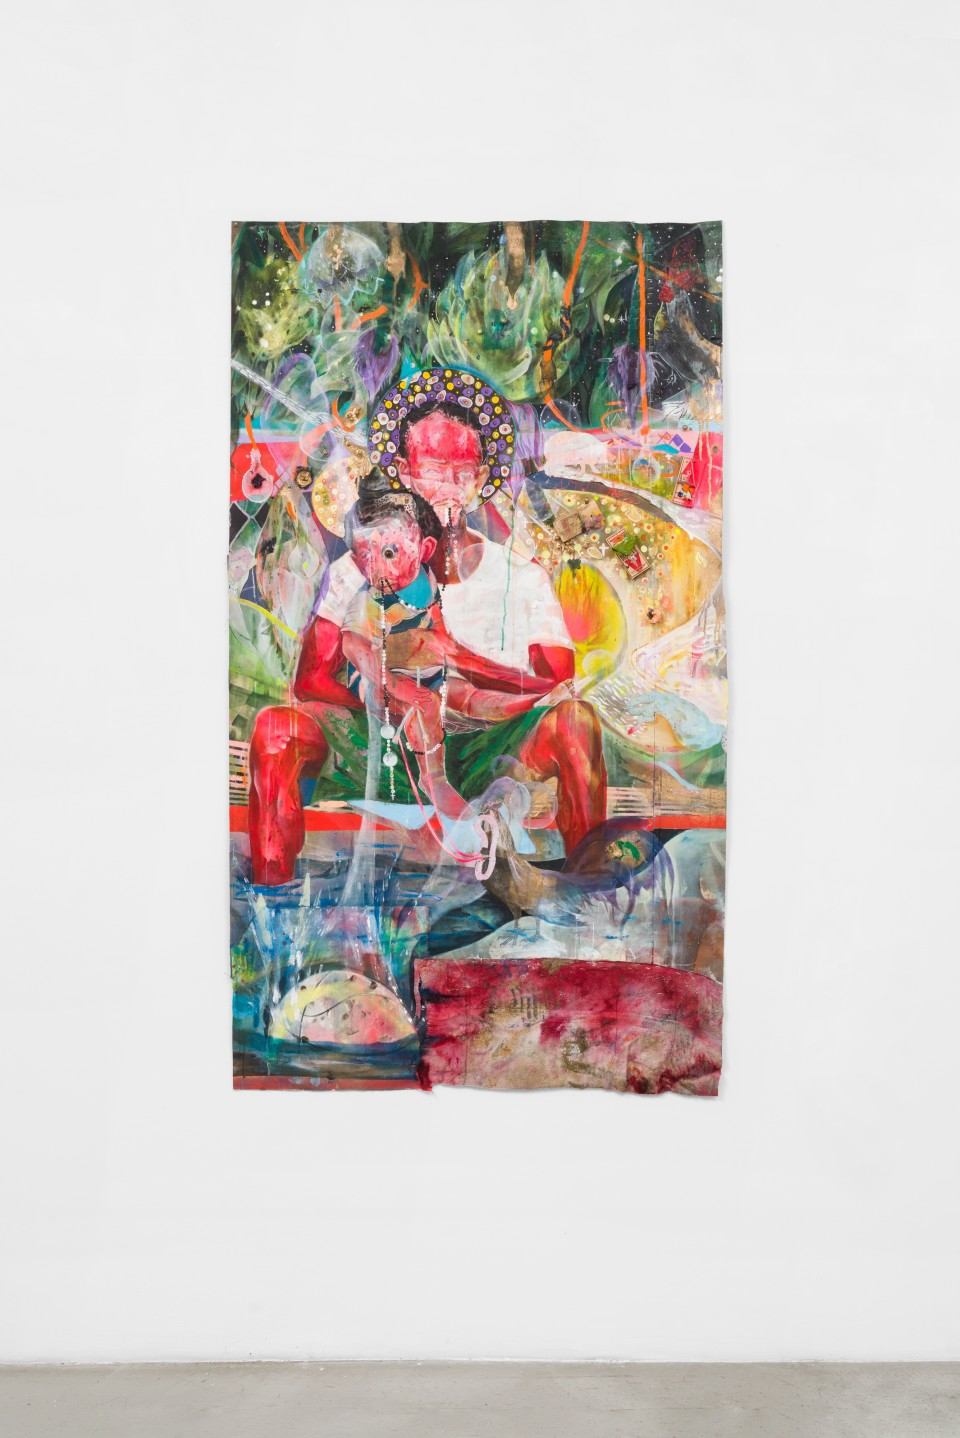 Image: Lavar Munroe  Virgin and Child, 2020  signed verso  acrylic, spray paint, mousetraps, bubble gum, pearls, bath towel, thread and needle on canvas  70 1/2 x 40 1/2 inches (179.1 x 102.9 cm)